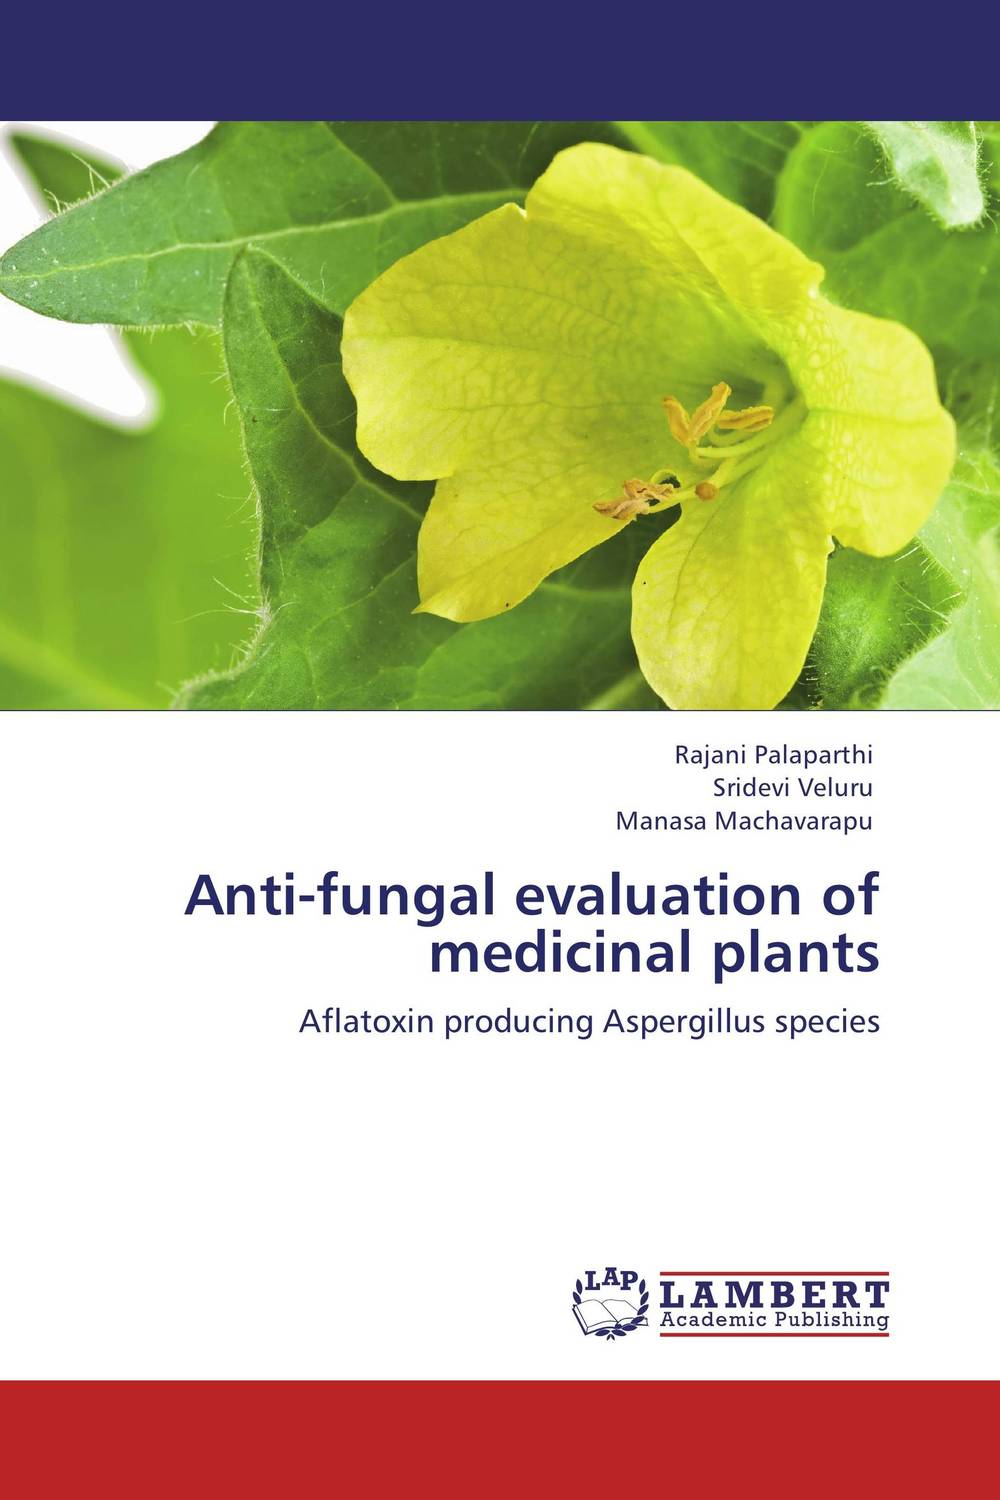 Anti-fungal evaluation of medicinal plants evaluation of aqueous solubility of hydroxamic acids by pls modelling